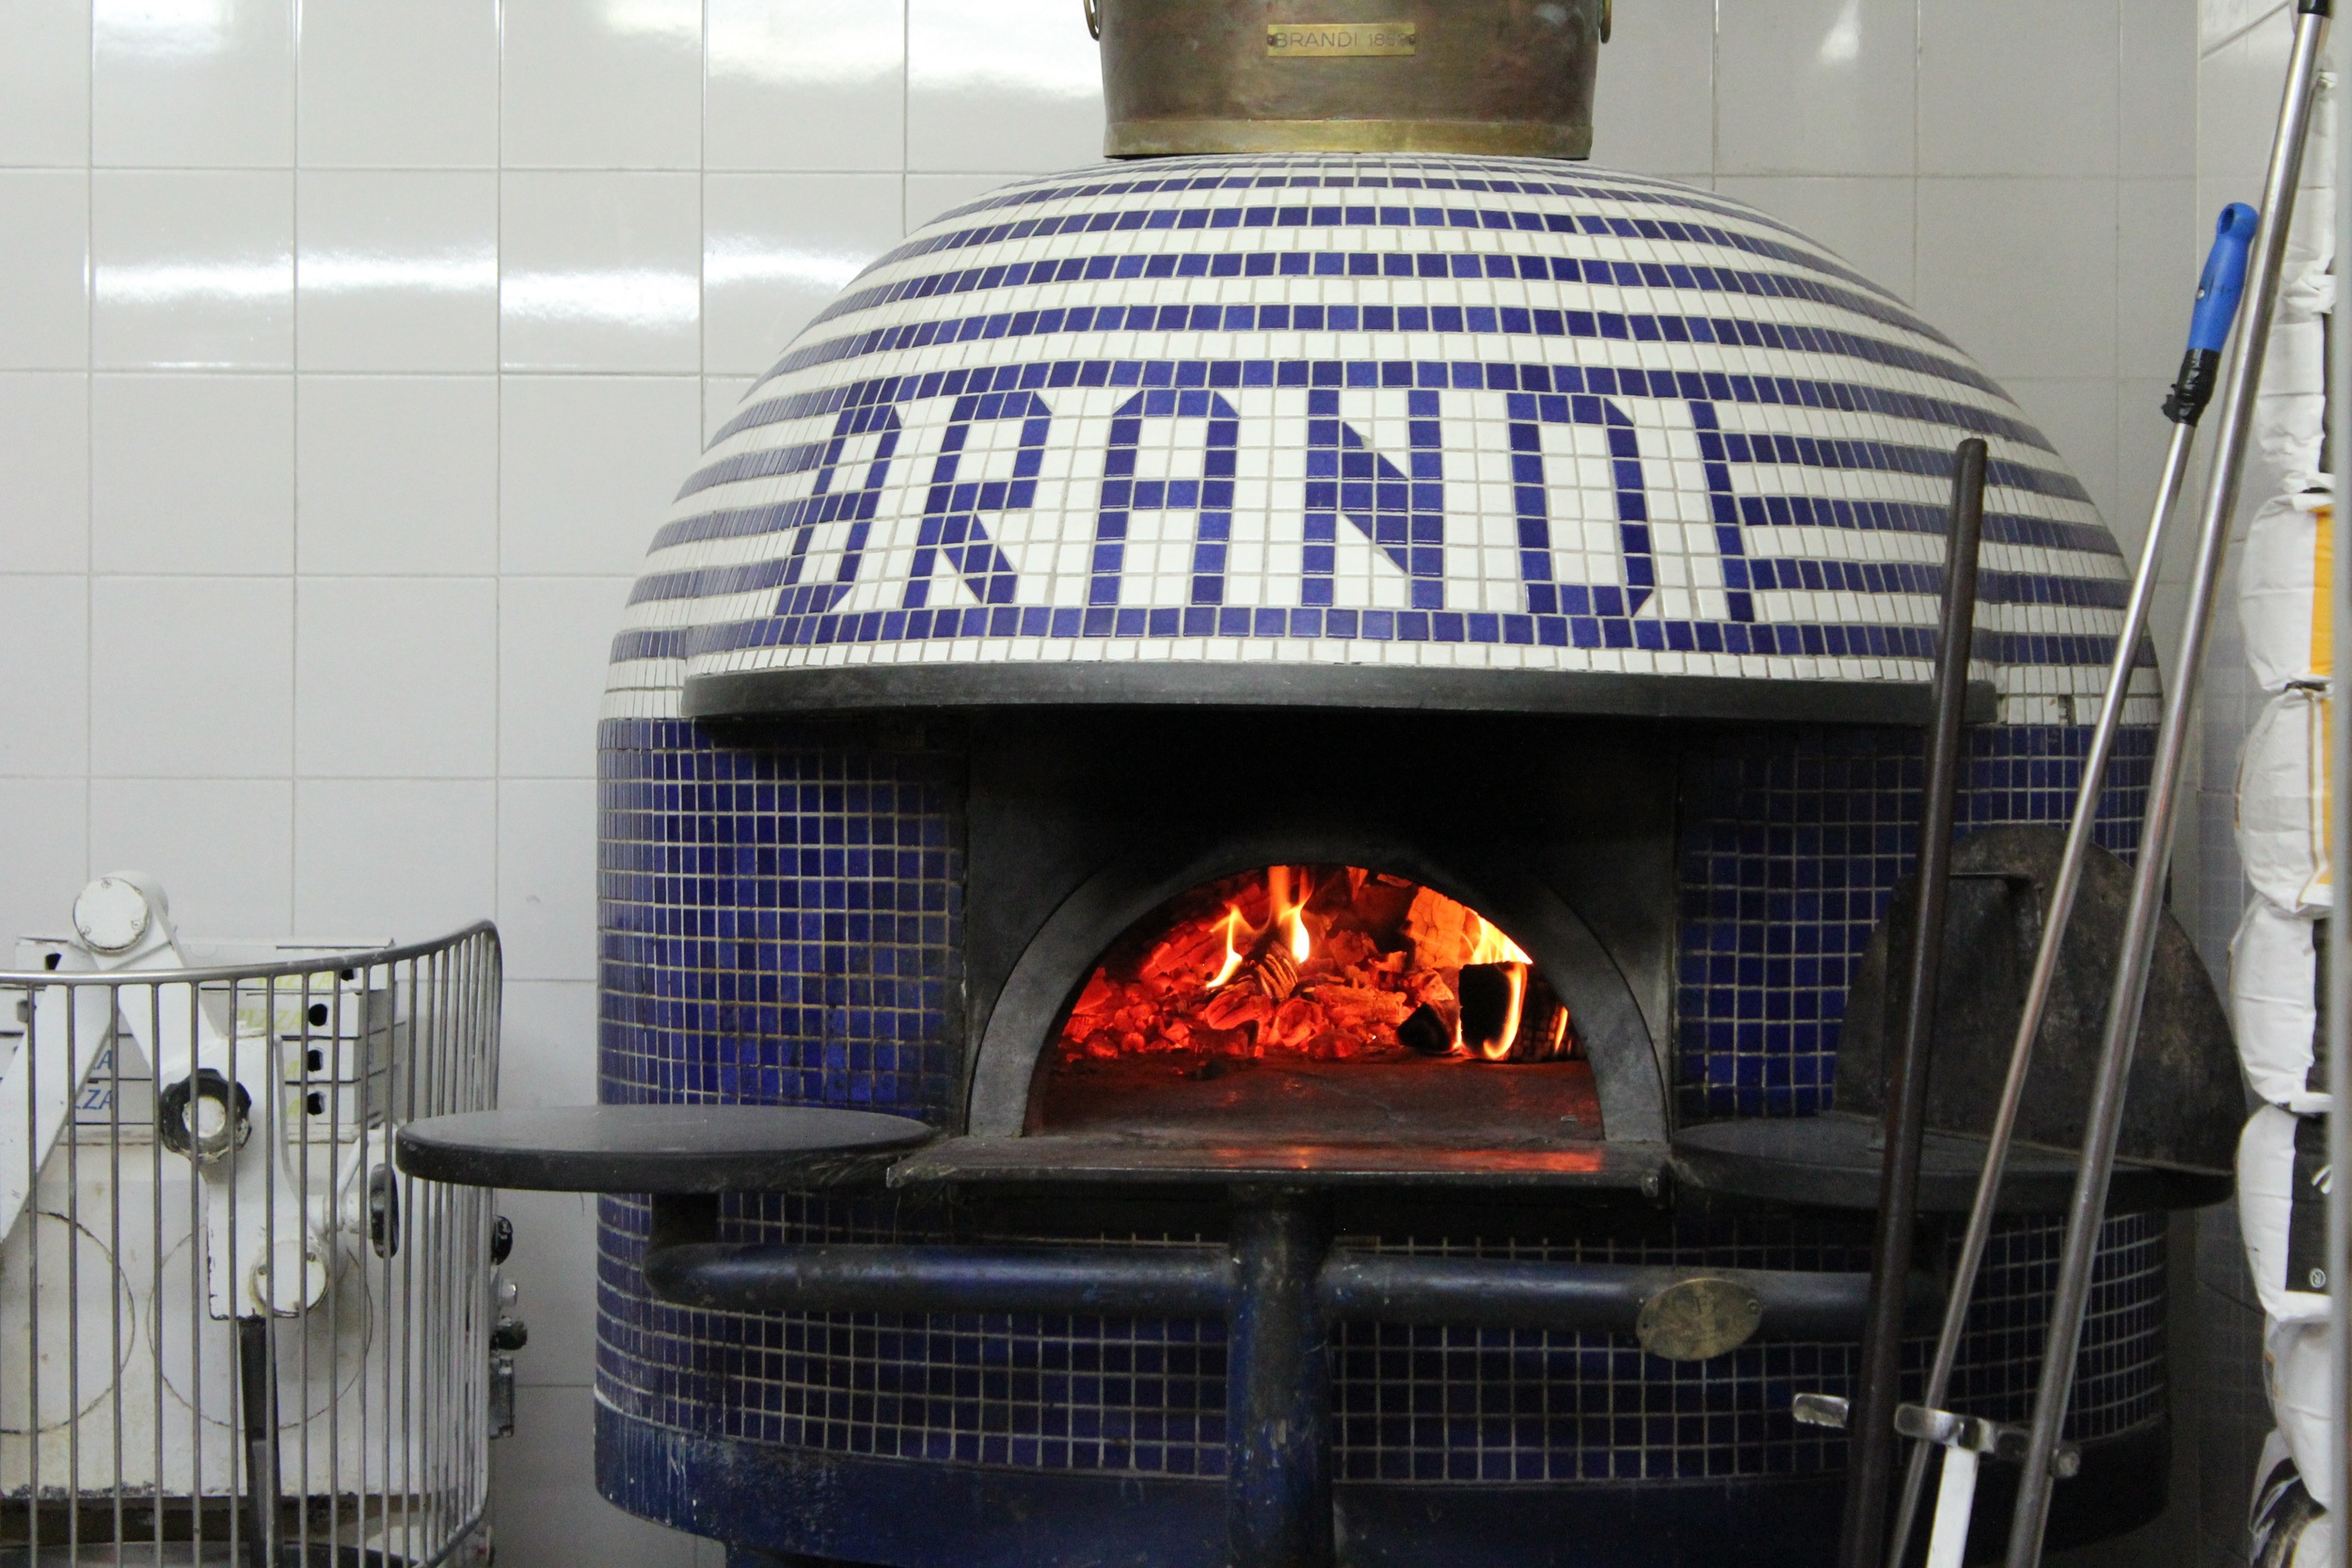 The wood fired oven at Antica Pizzeria Brandi where pizza margherita was invented